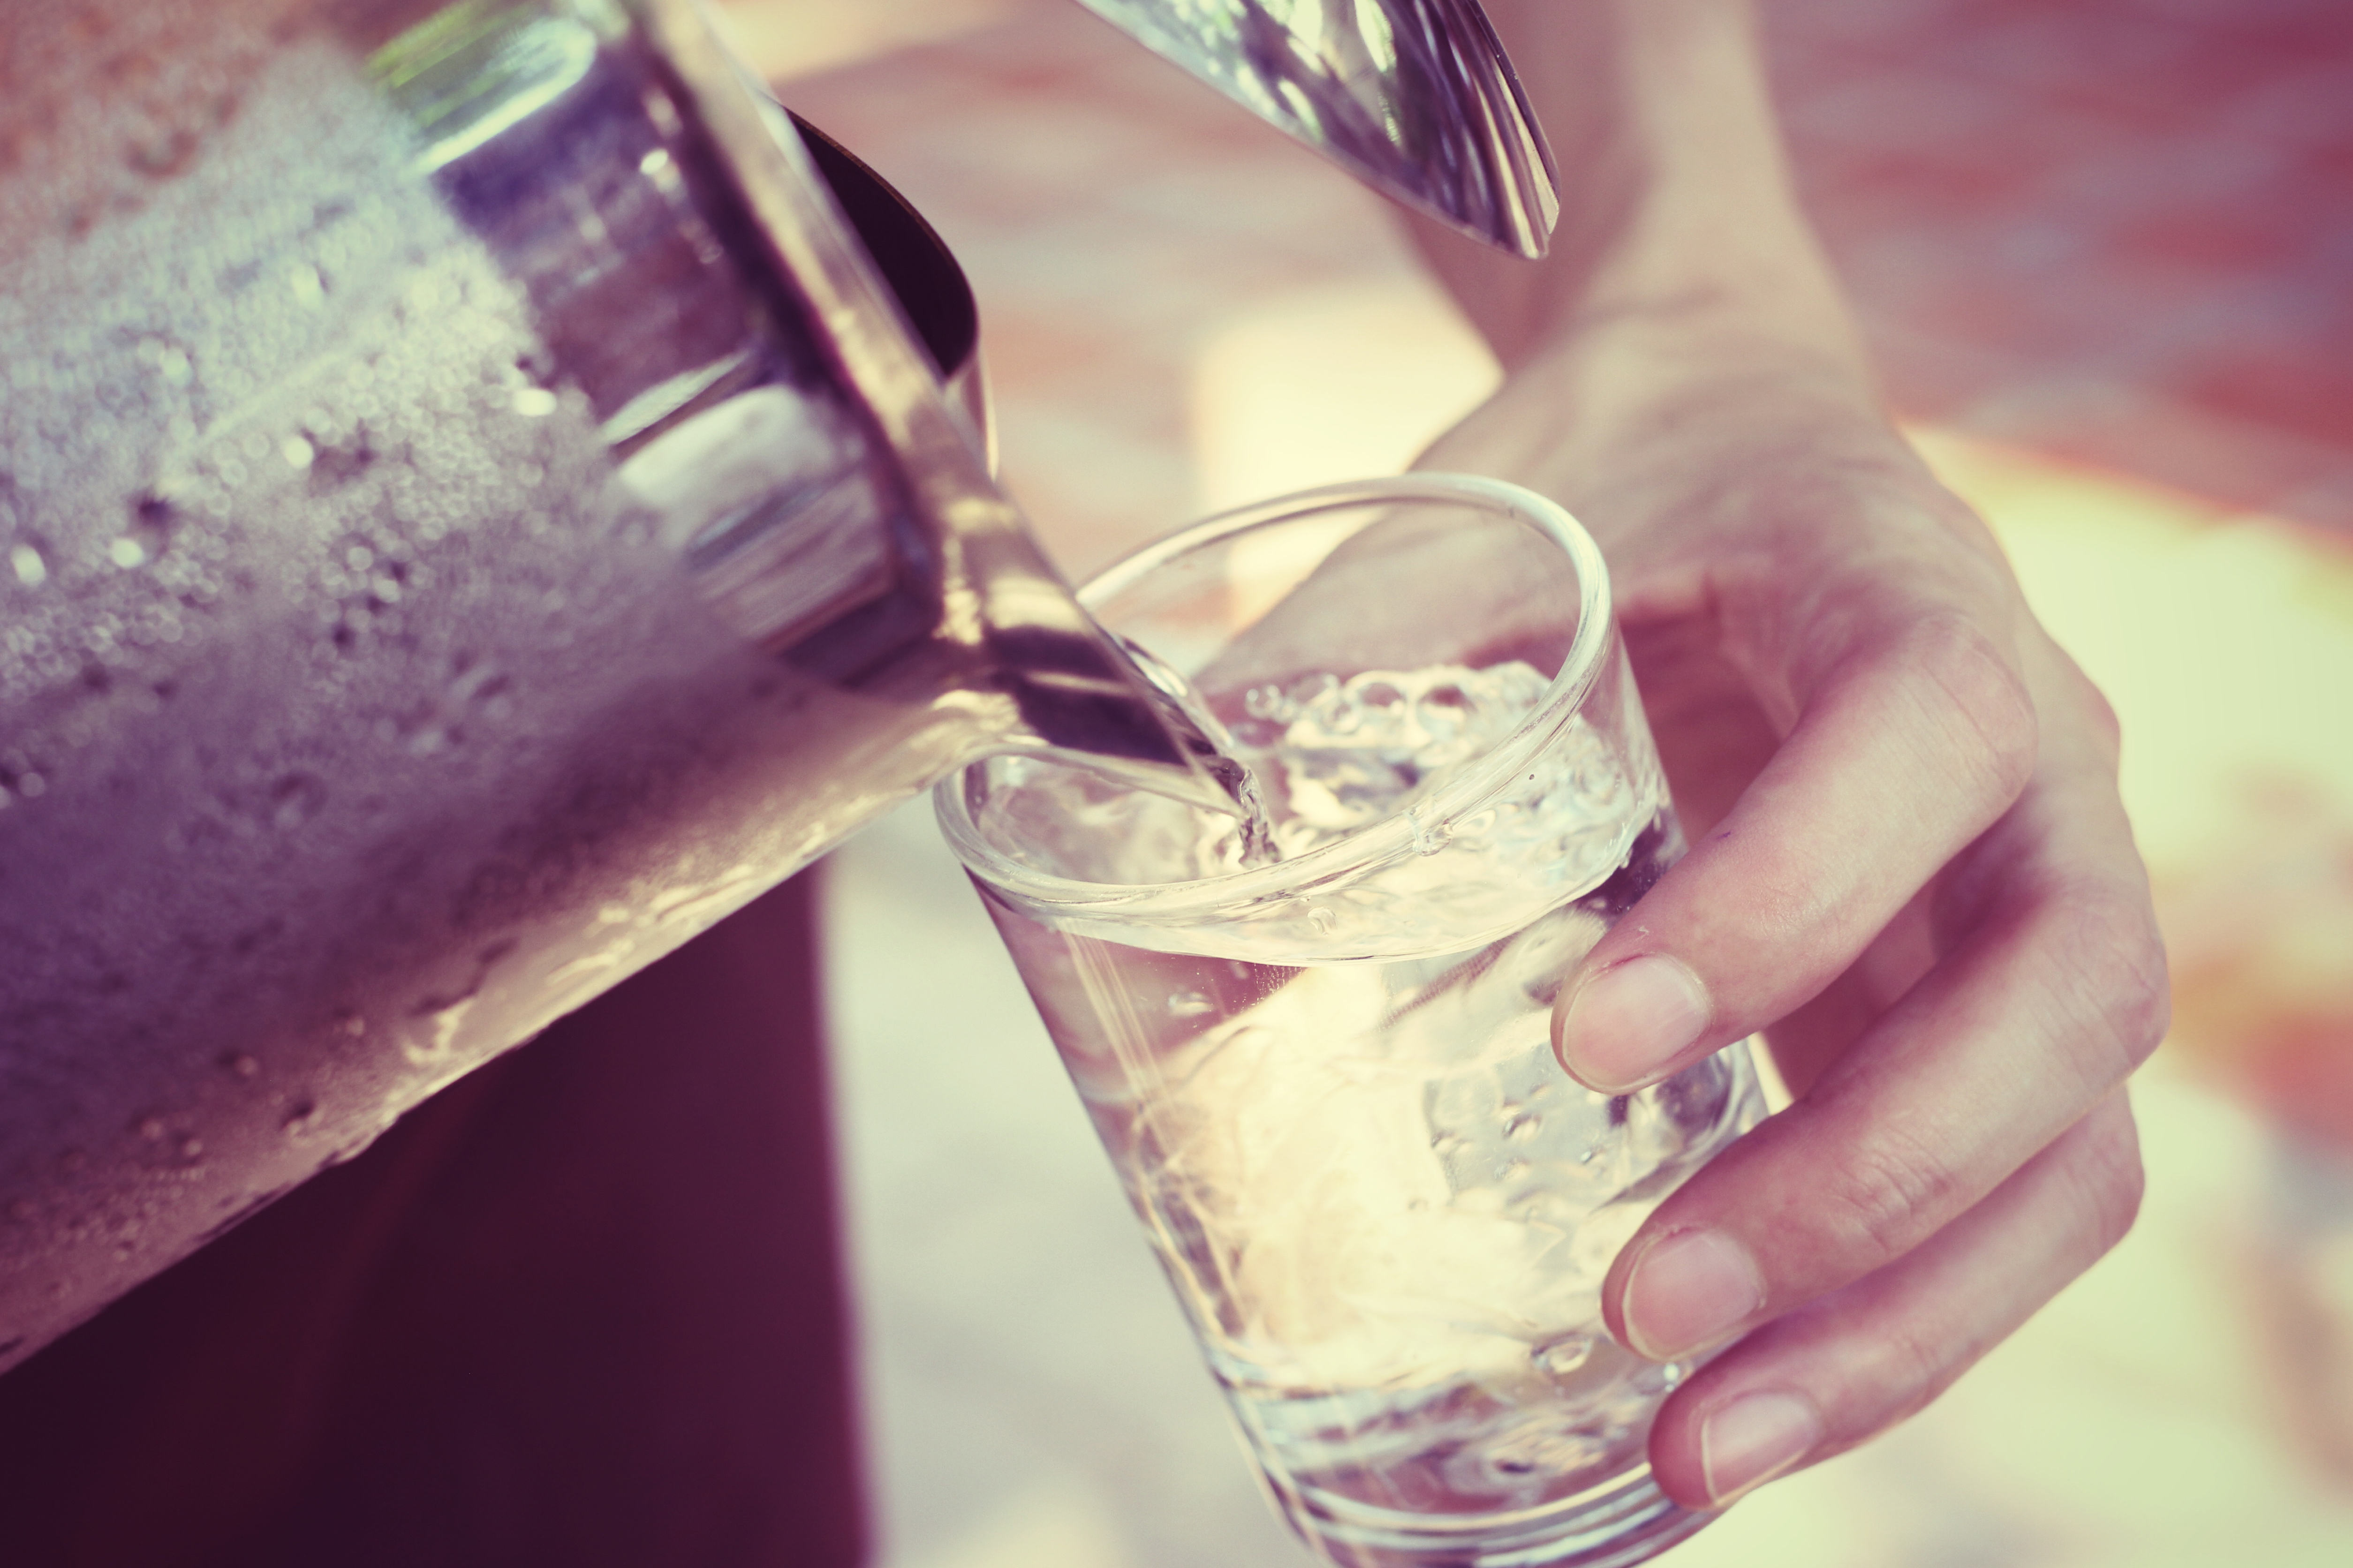 Pouring water from a pitcher into a glass. Photo credit: successo images / Shutterstock